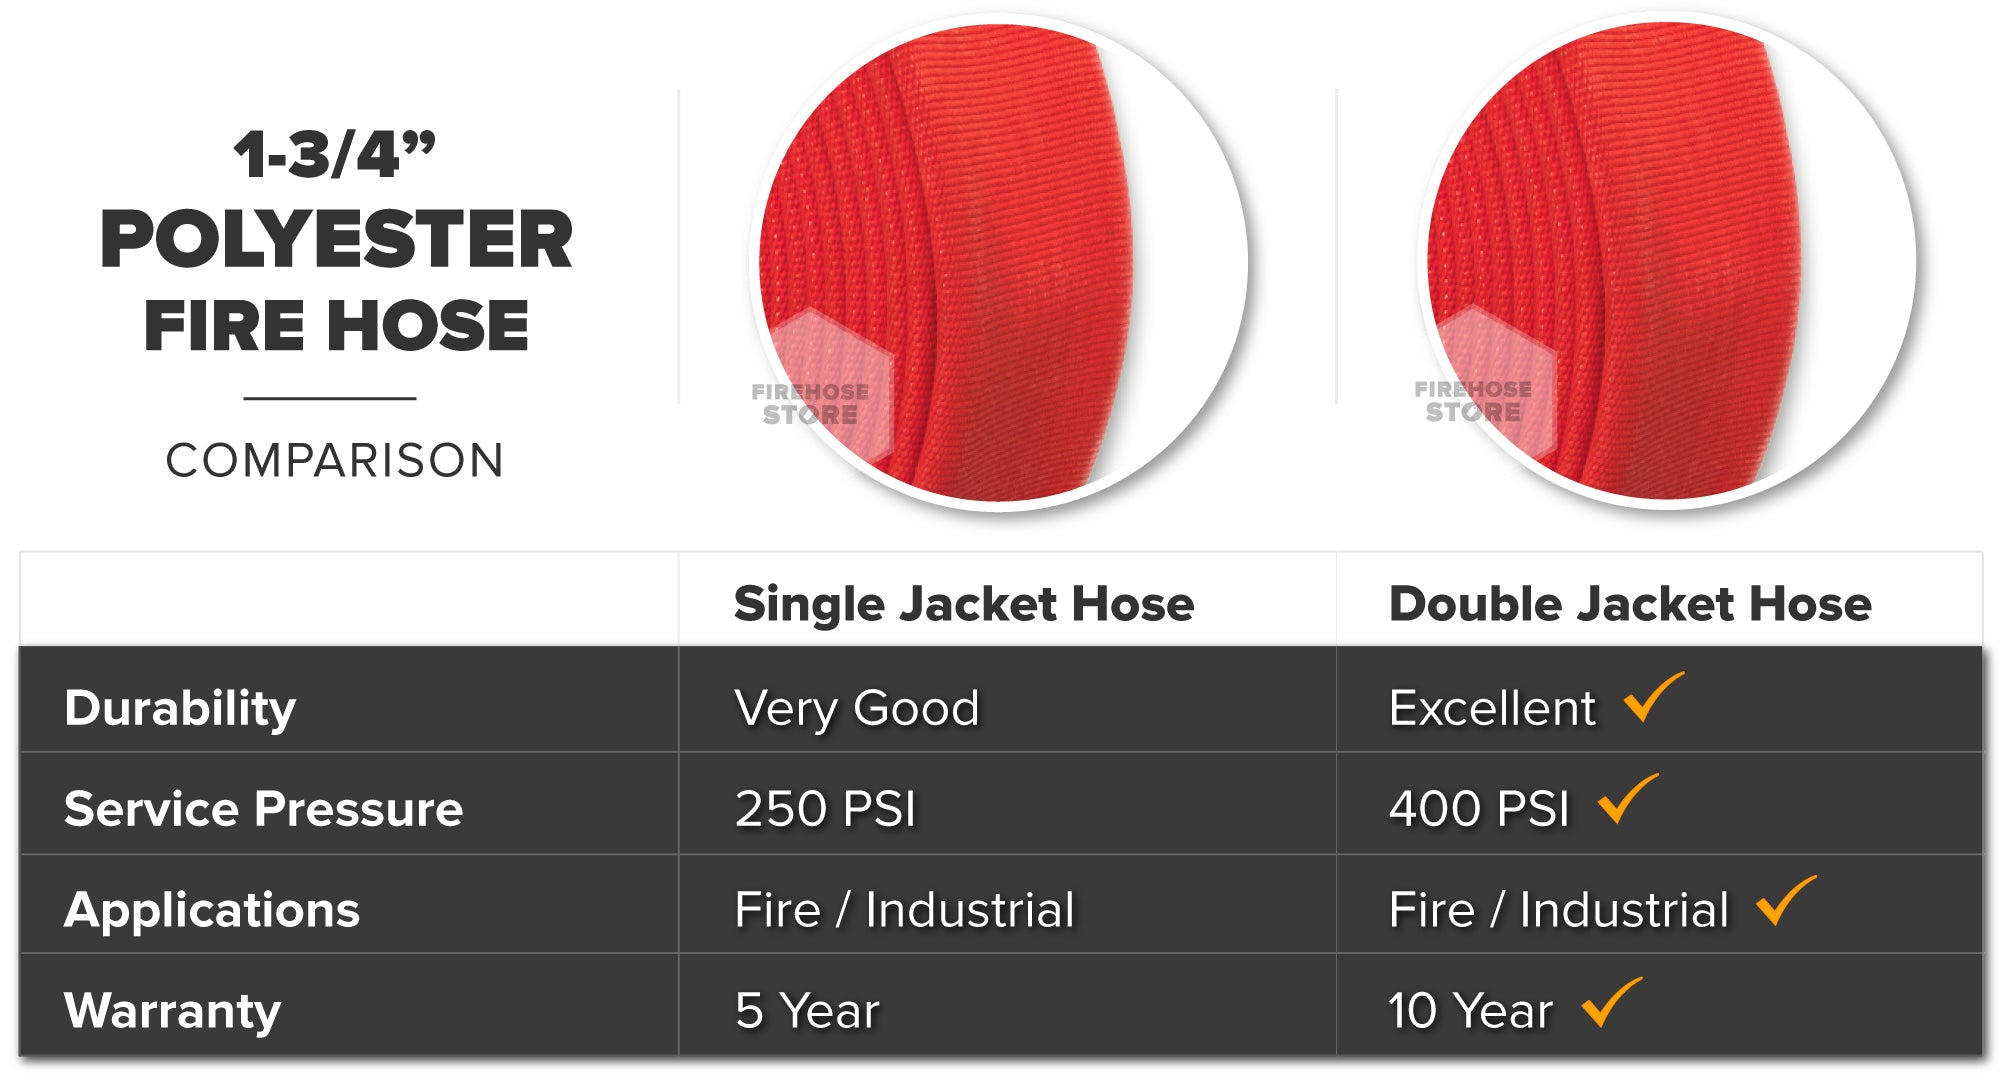 Red 1.75 Inch Double Jacket Hose Aluminum NPSH Polyester Material Overview